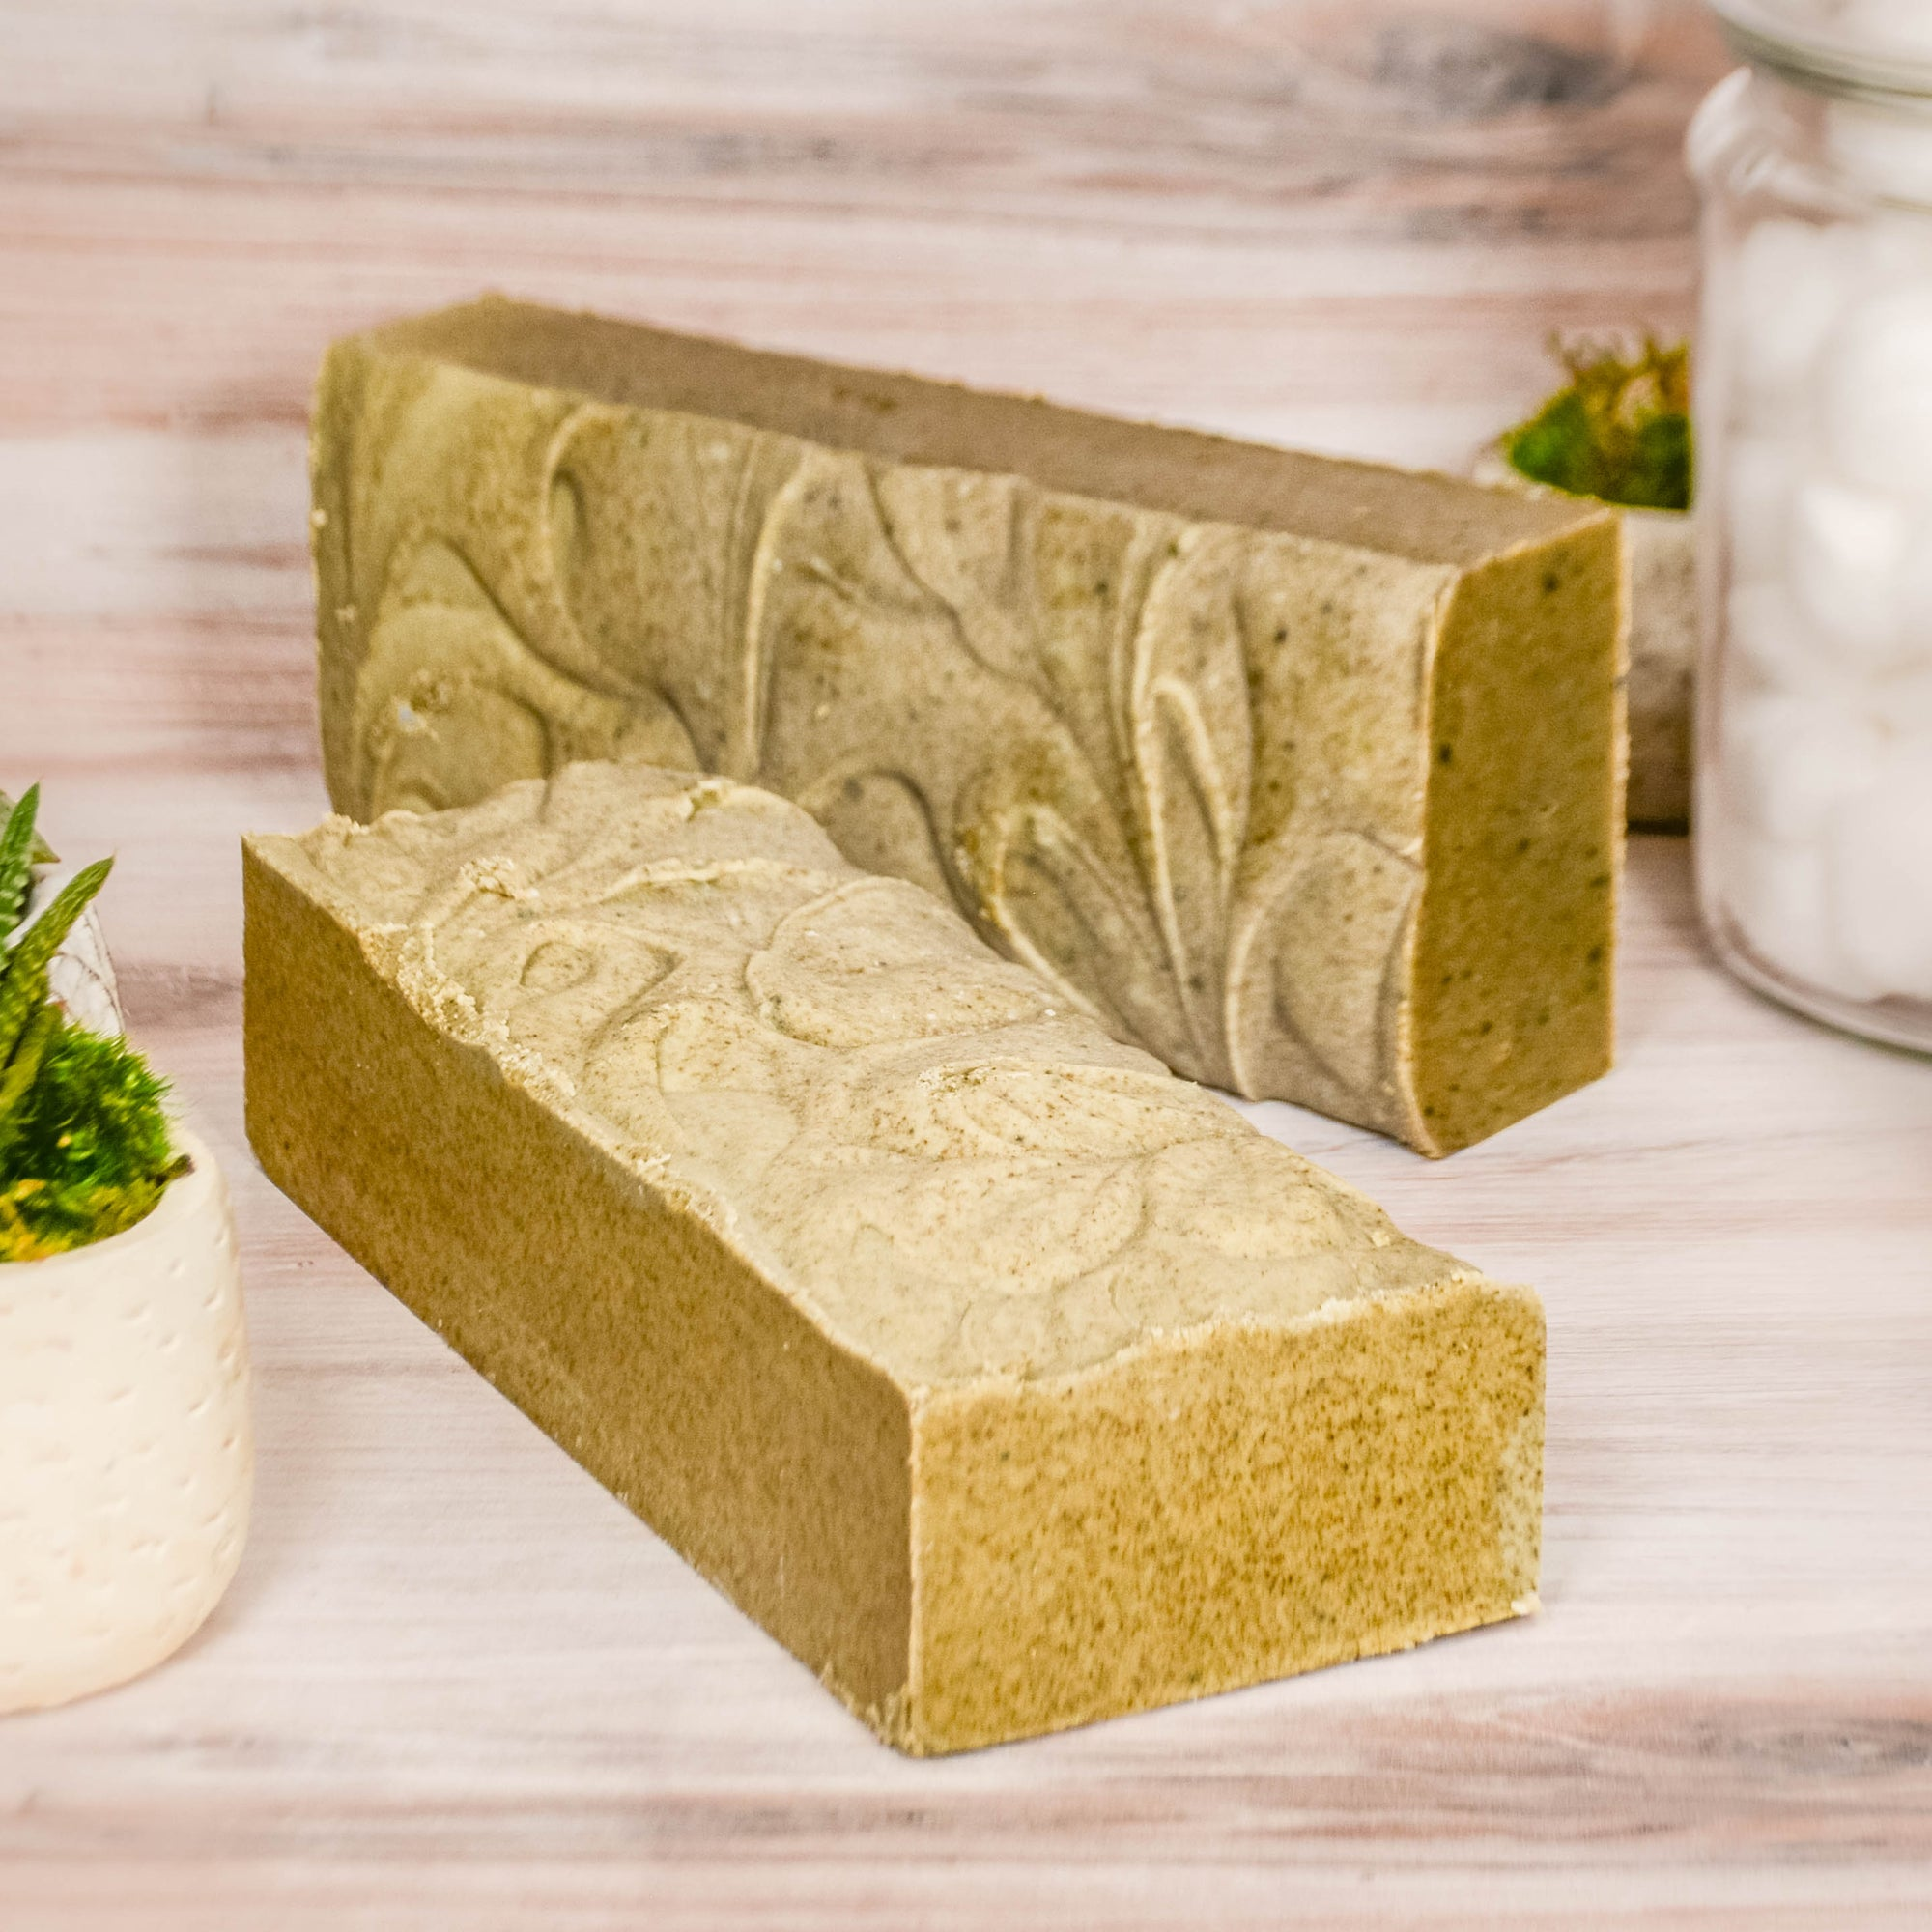 goat milk soap logs